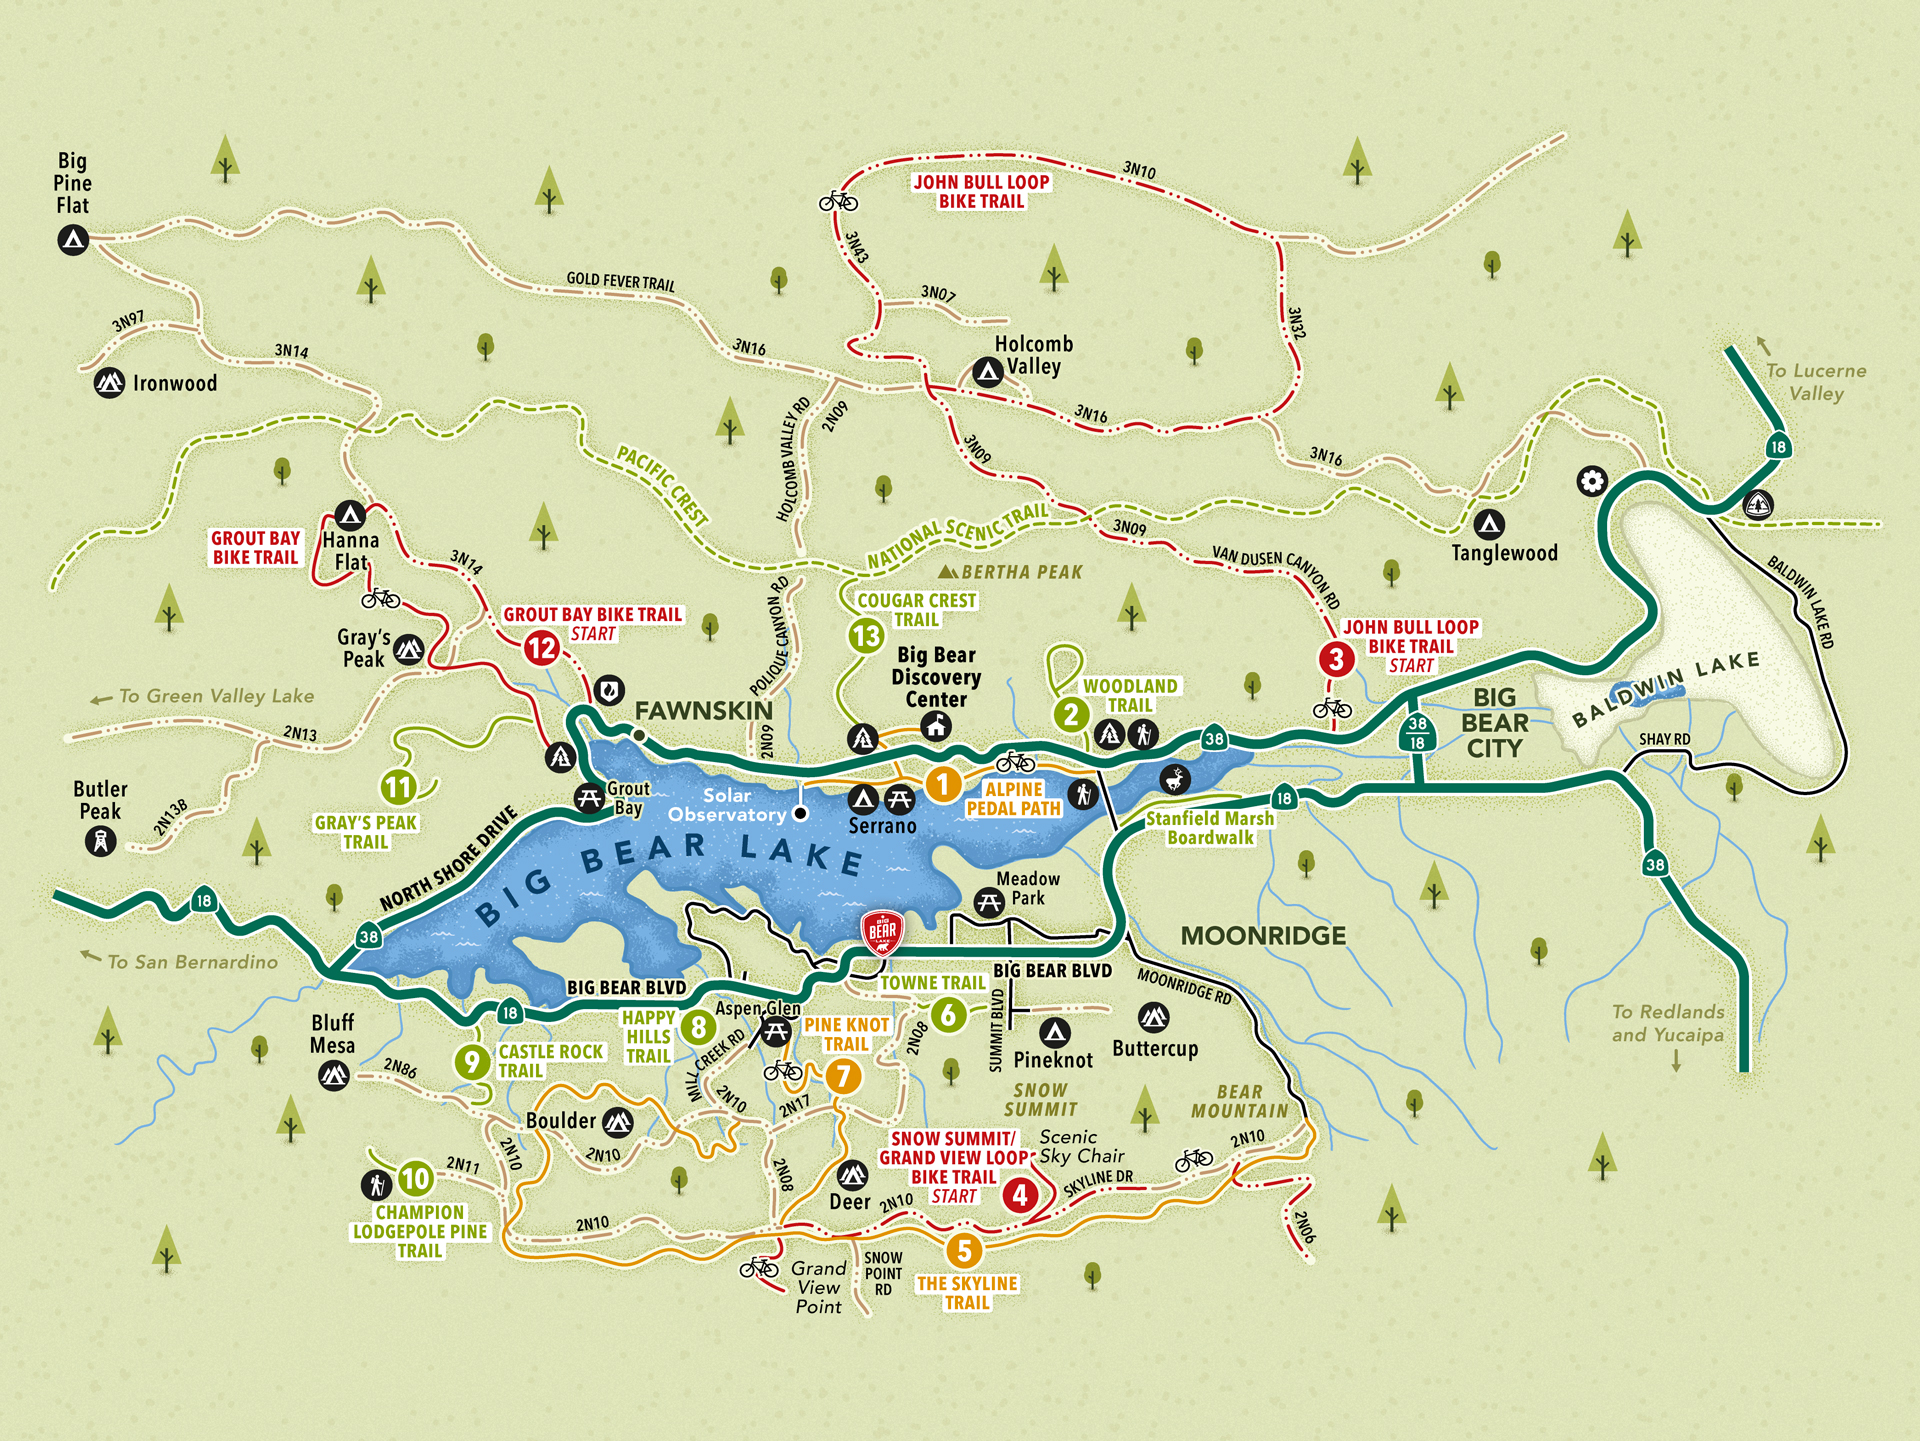 Big Bear Lake hiking and biking map